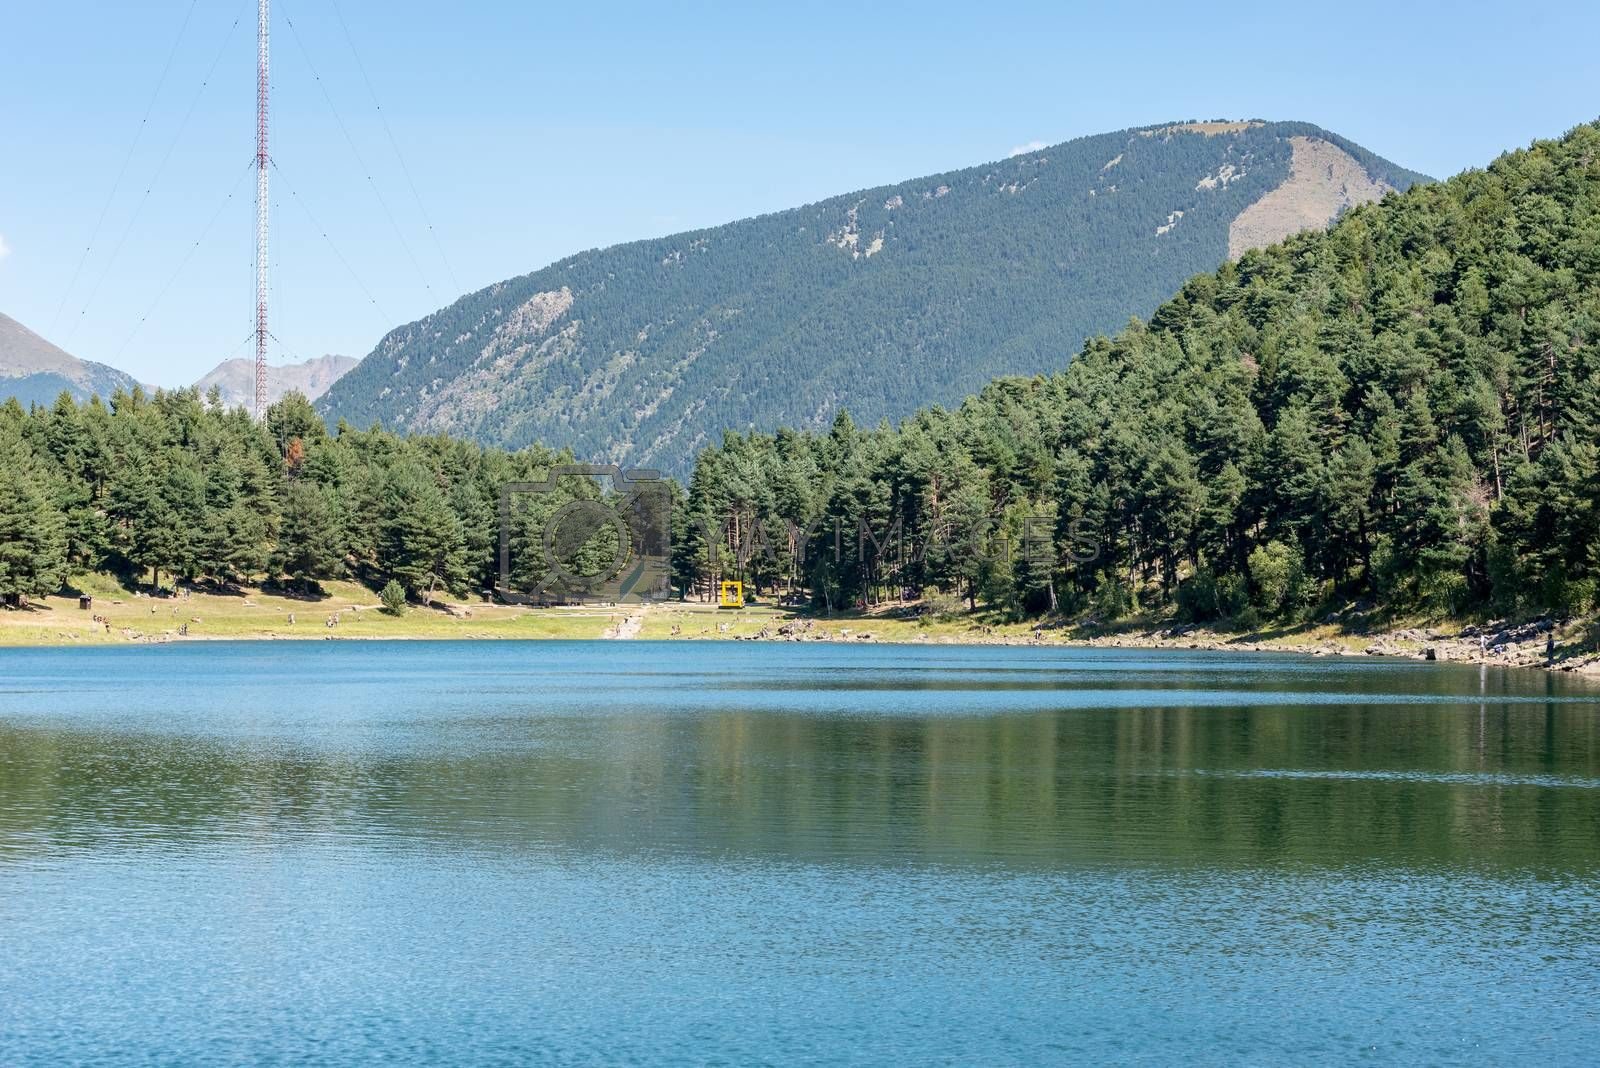 Summer afternoon at Lake Engolasters in the Pyrenees. Escaldes Engordany, Andorra.